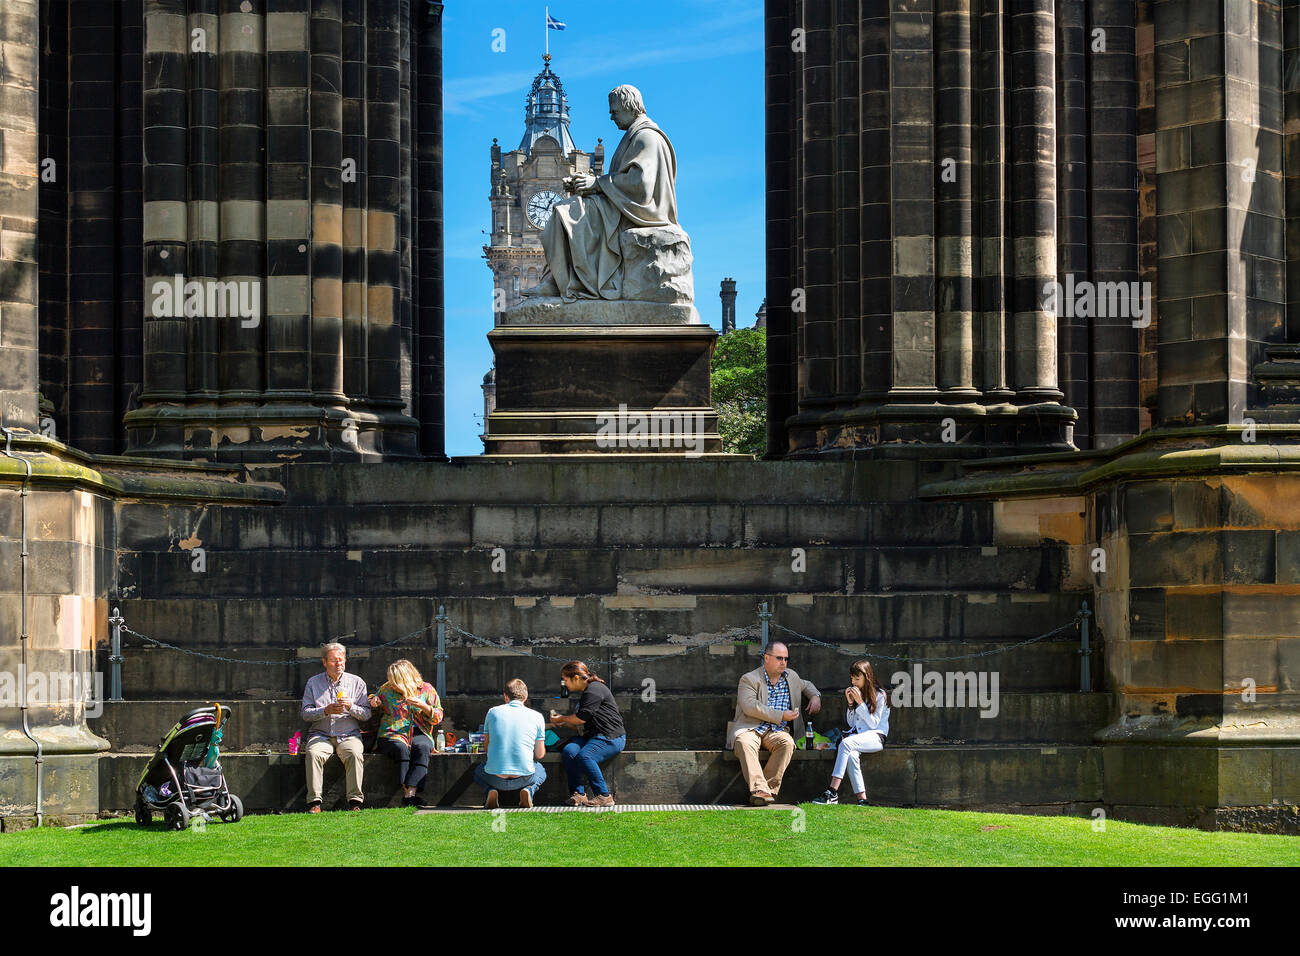 Scotland, Edinburgh, Walter Scott Monument in Scotland - Stock Image